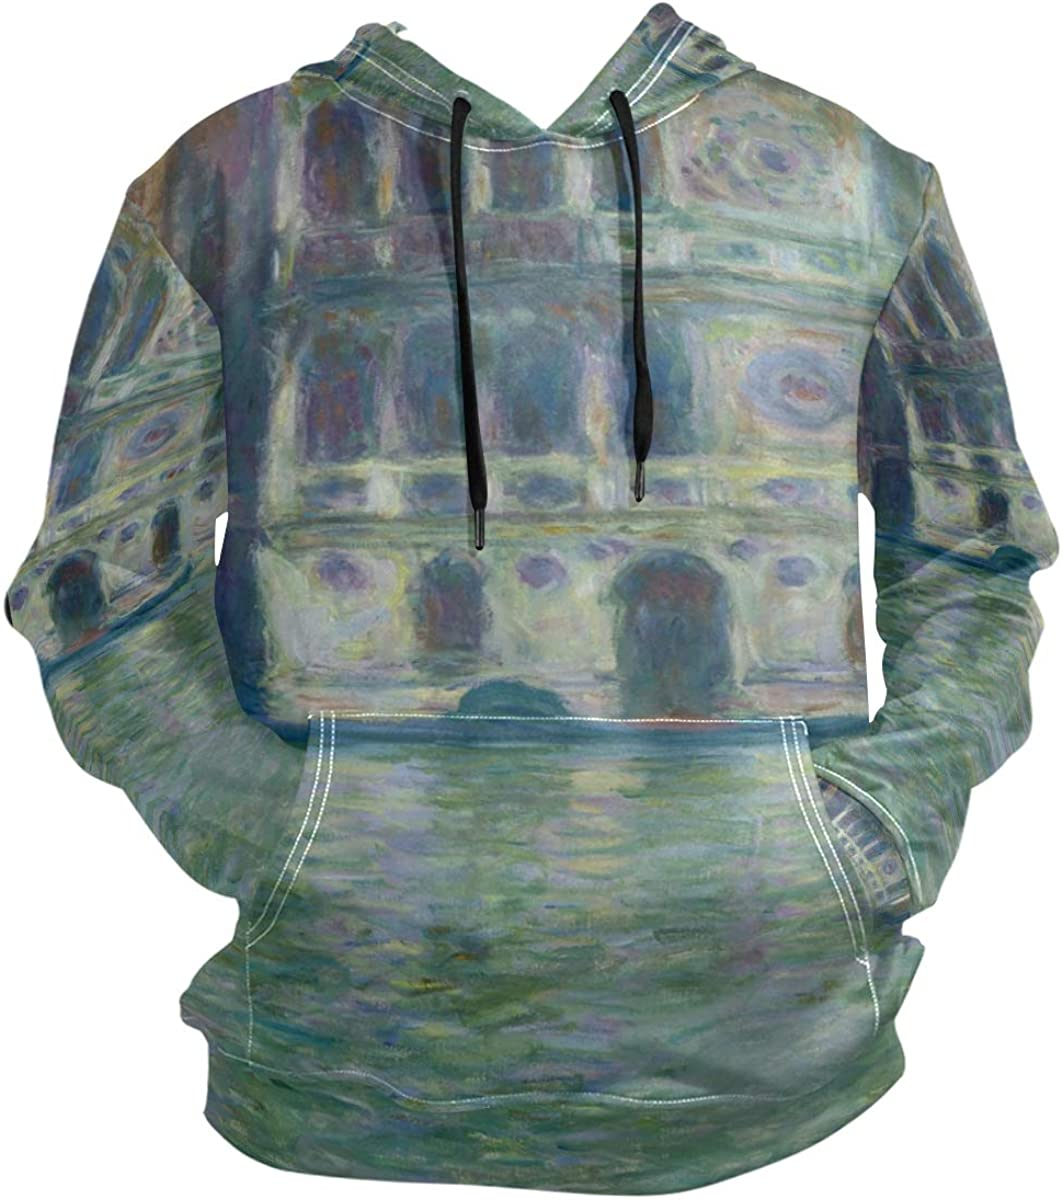 SLHFPX Monet Dario Palace Ranking TOP13 Ranking TOP4 Venice Hooded Long 3D Hoodie Pullover